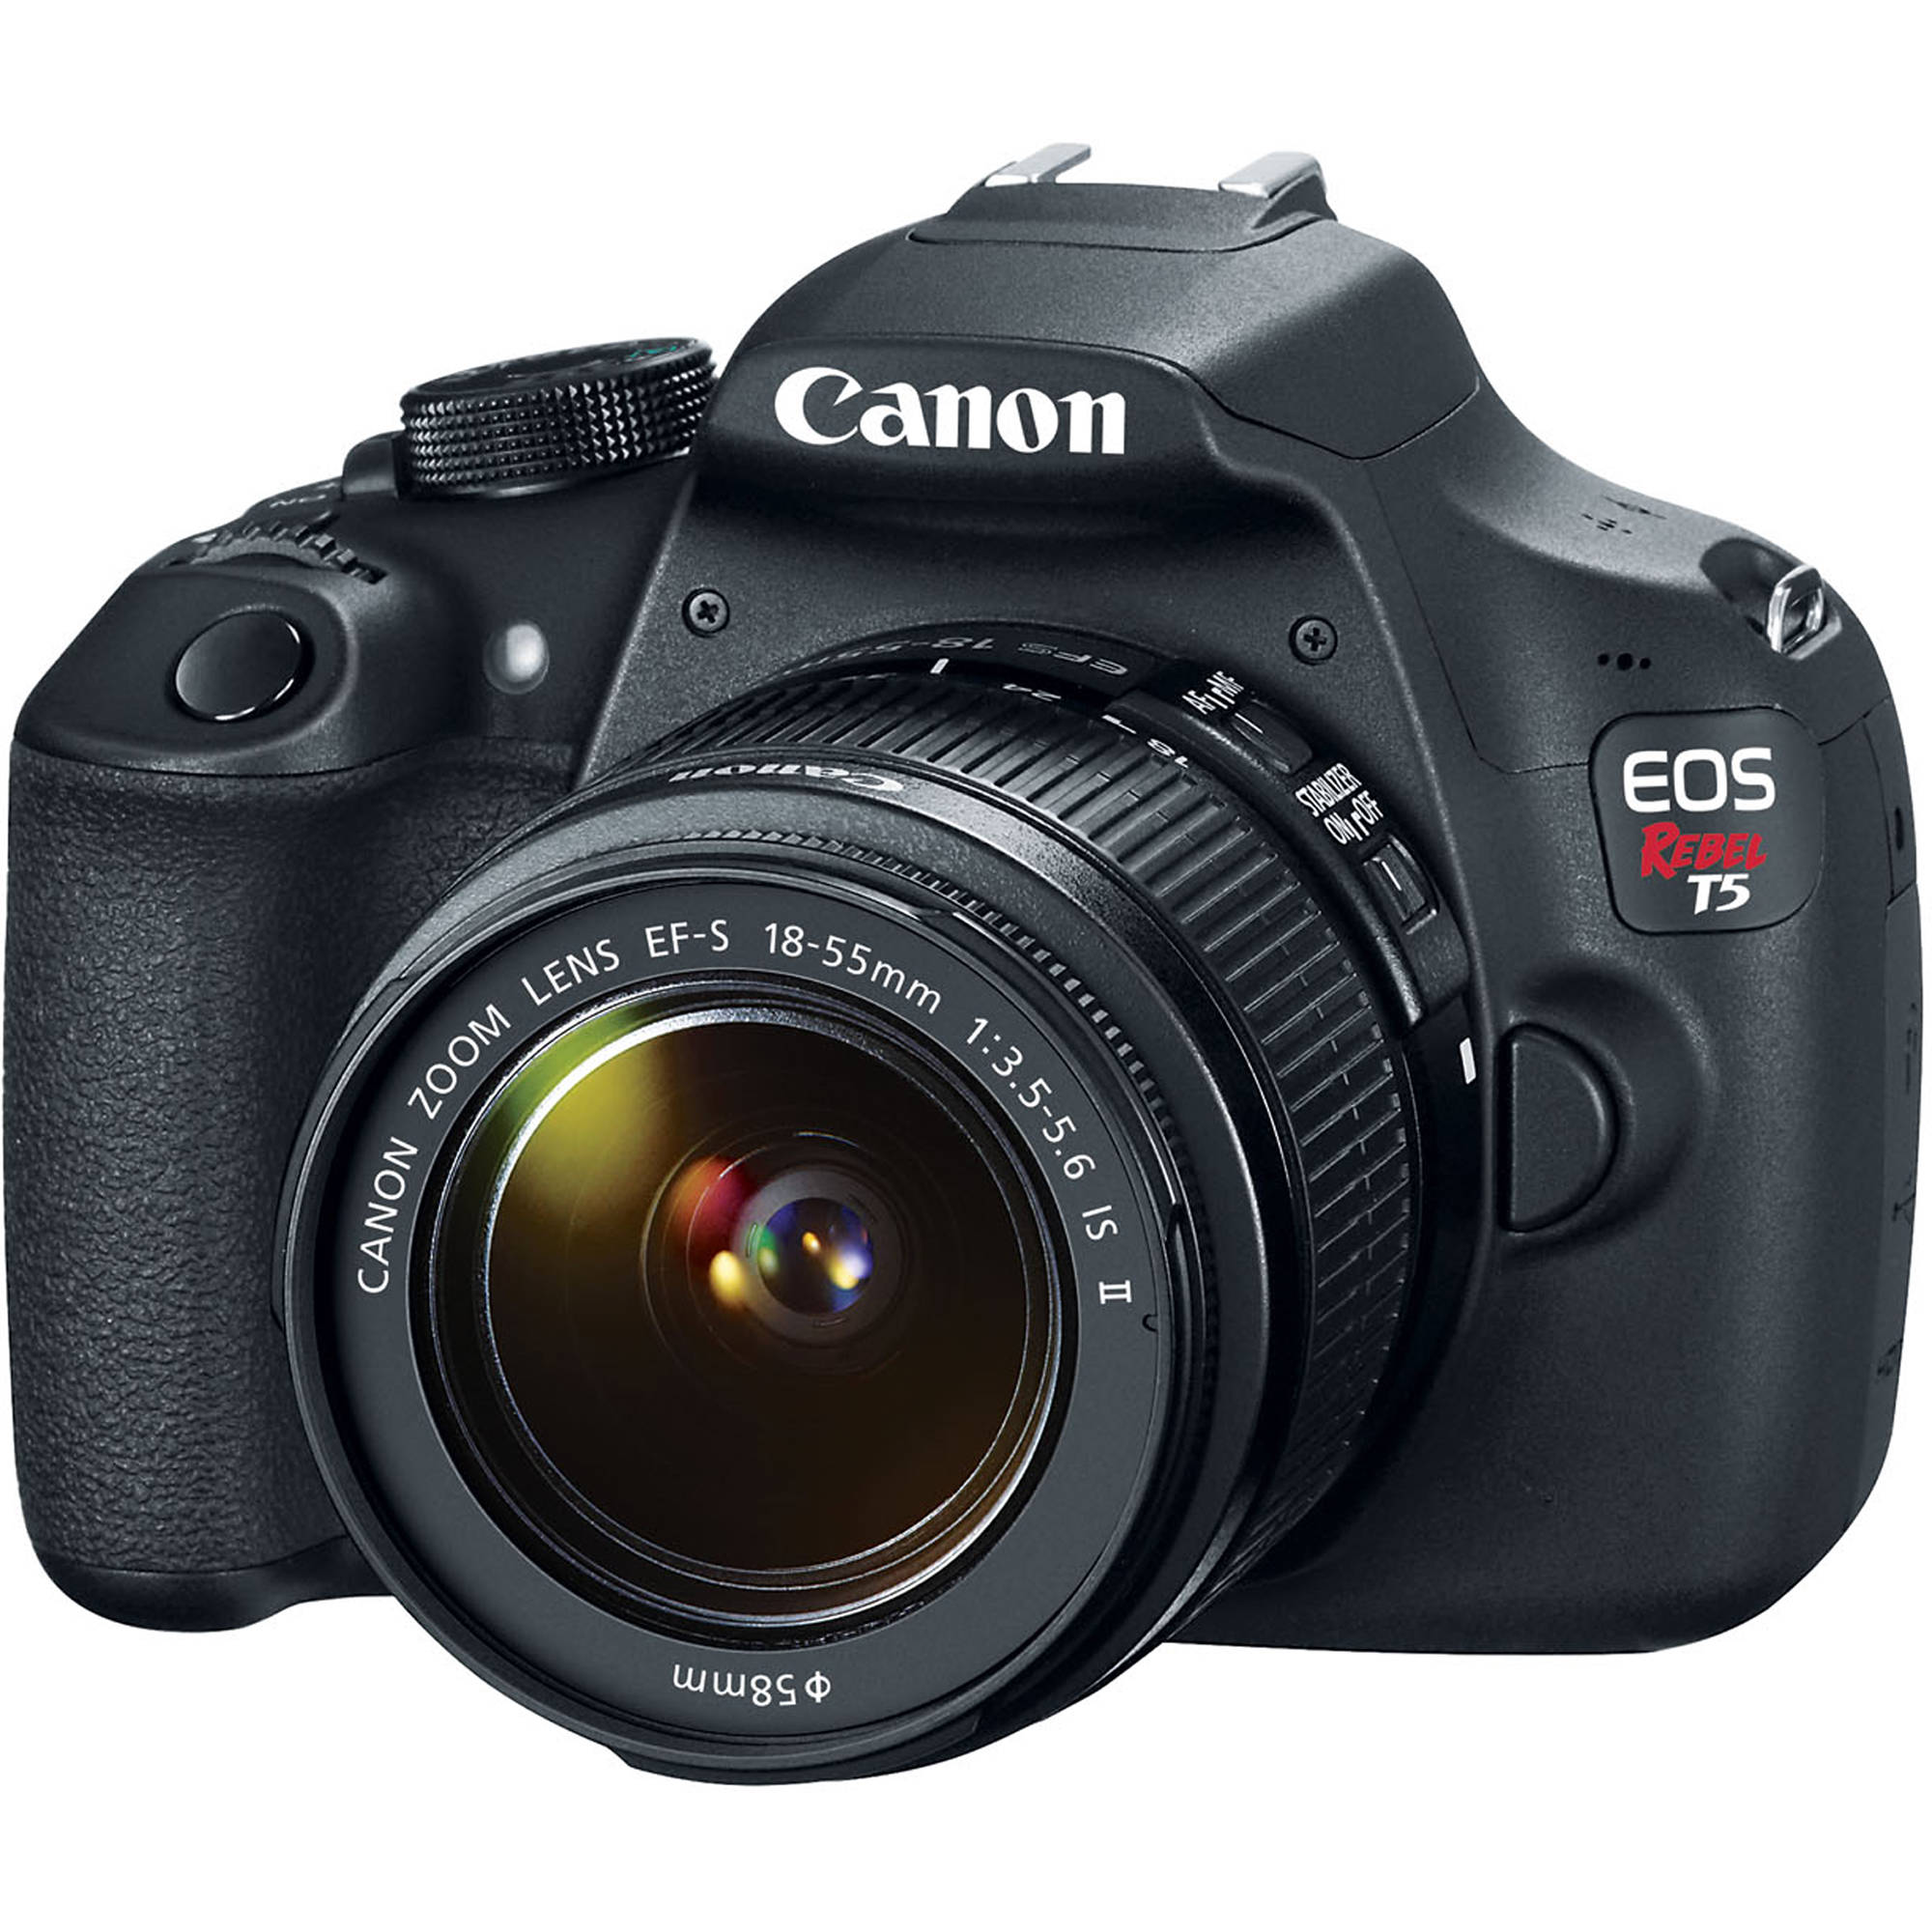 Camera Dslr Camera Use canon t5 eos rebel dslr camera with ef s 18 55mm is ii 9126b003 lens